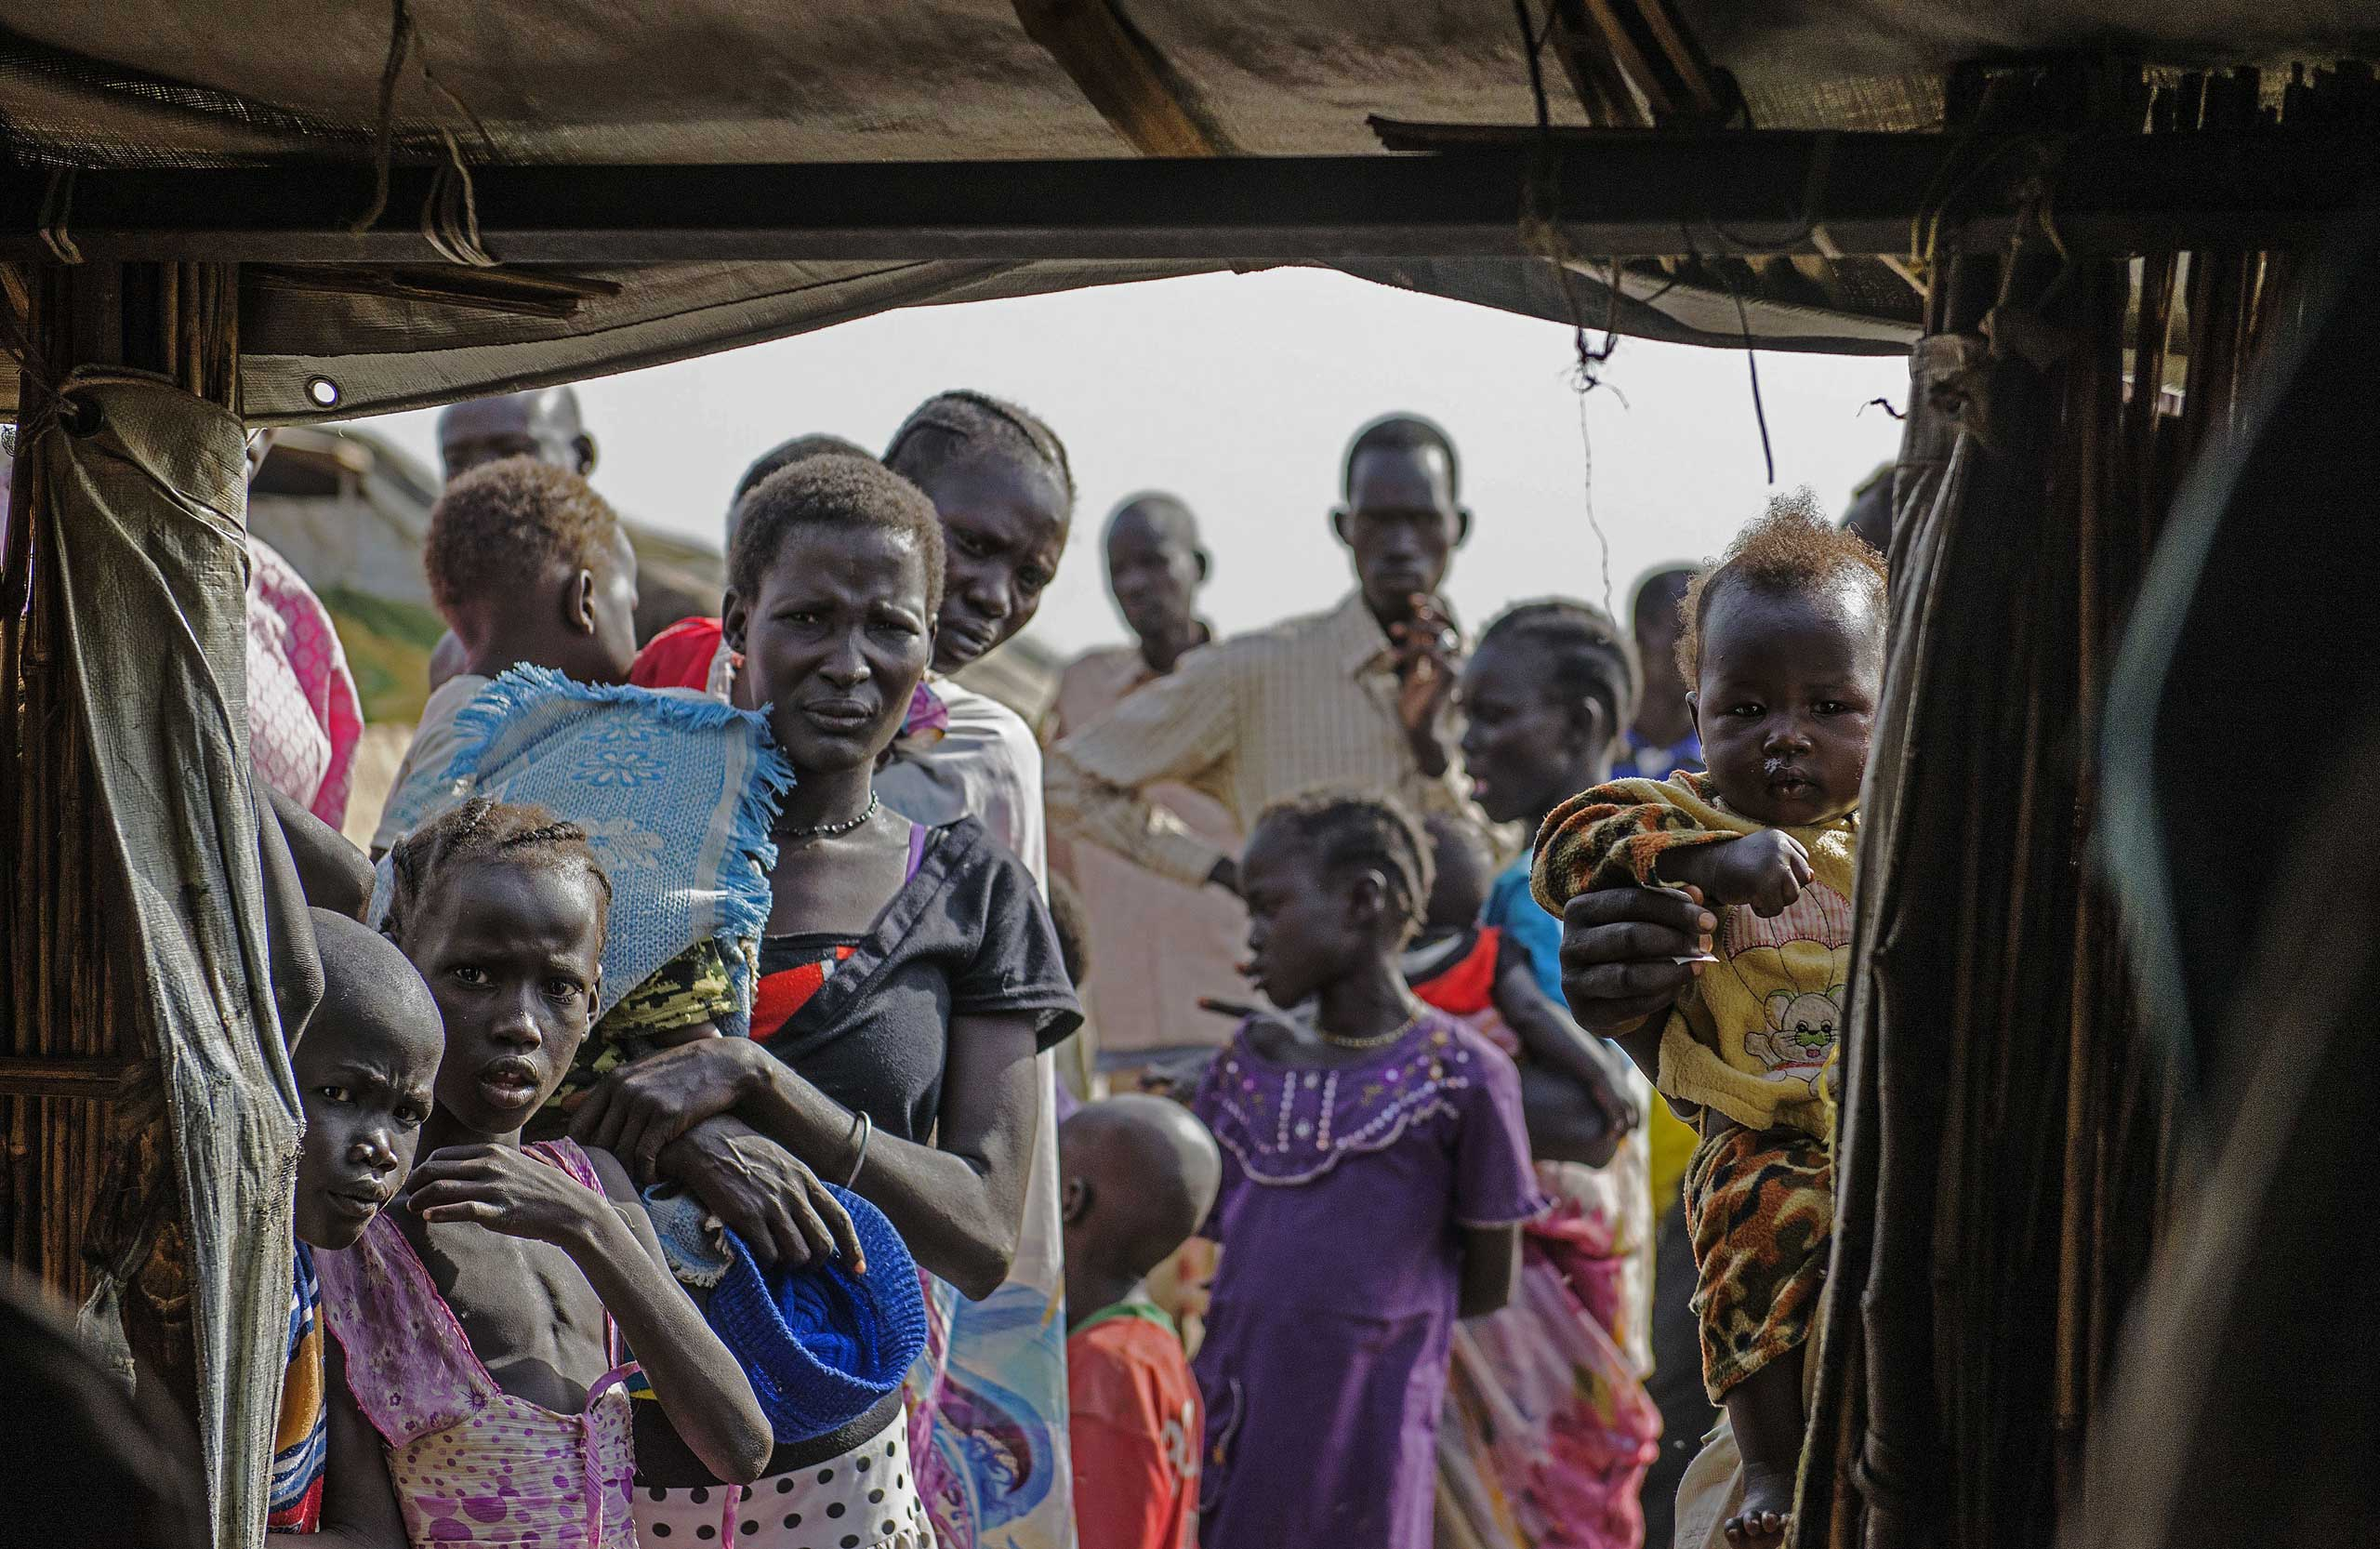 Internally displaced persons queue to register at a refugee camp in Bentiu, South Sudan in February 2015.